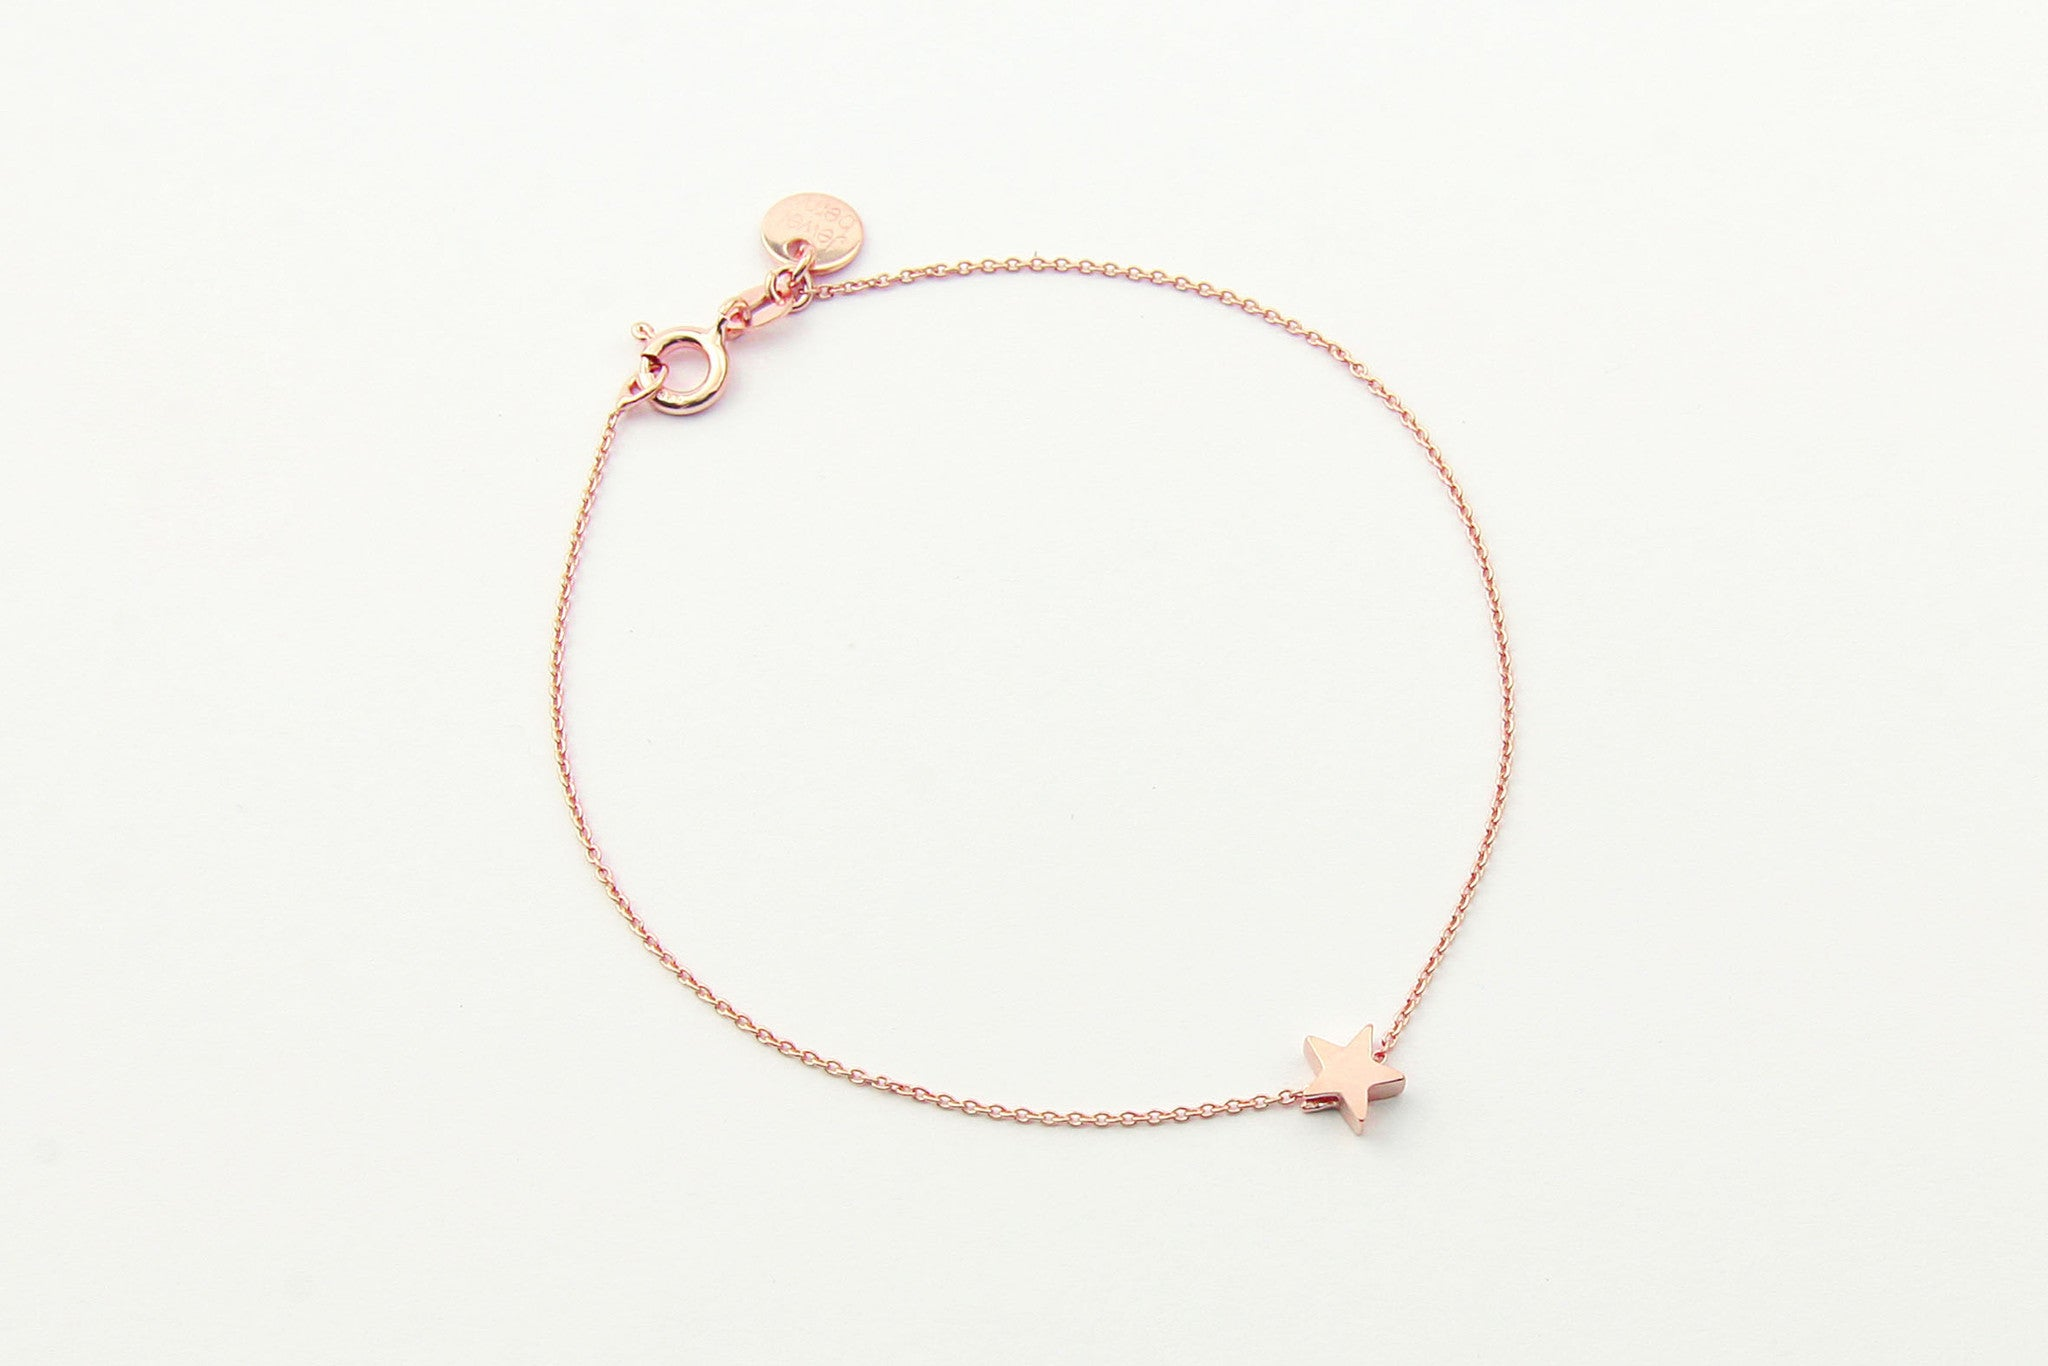 jewelberry armband bracelet little star rose gold plated sterling silver fine jewelry handmade with love fairtrade anchor chain